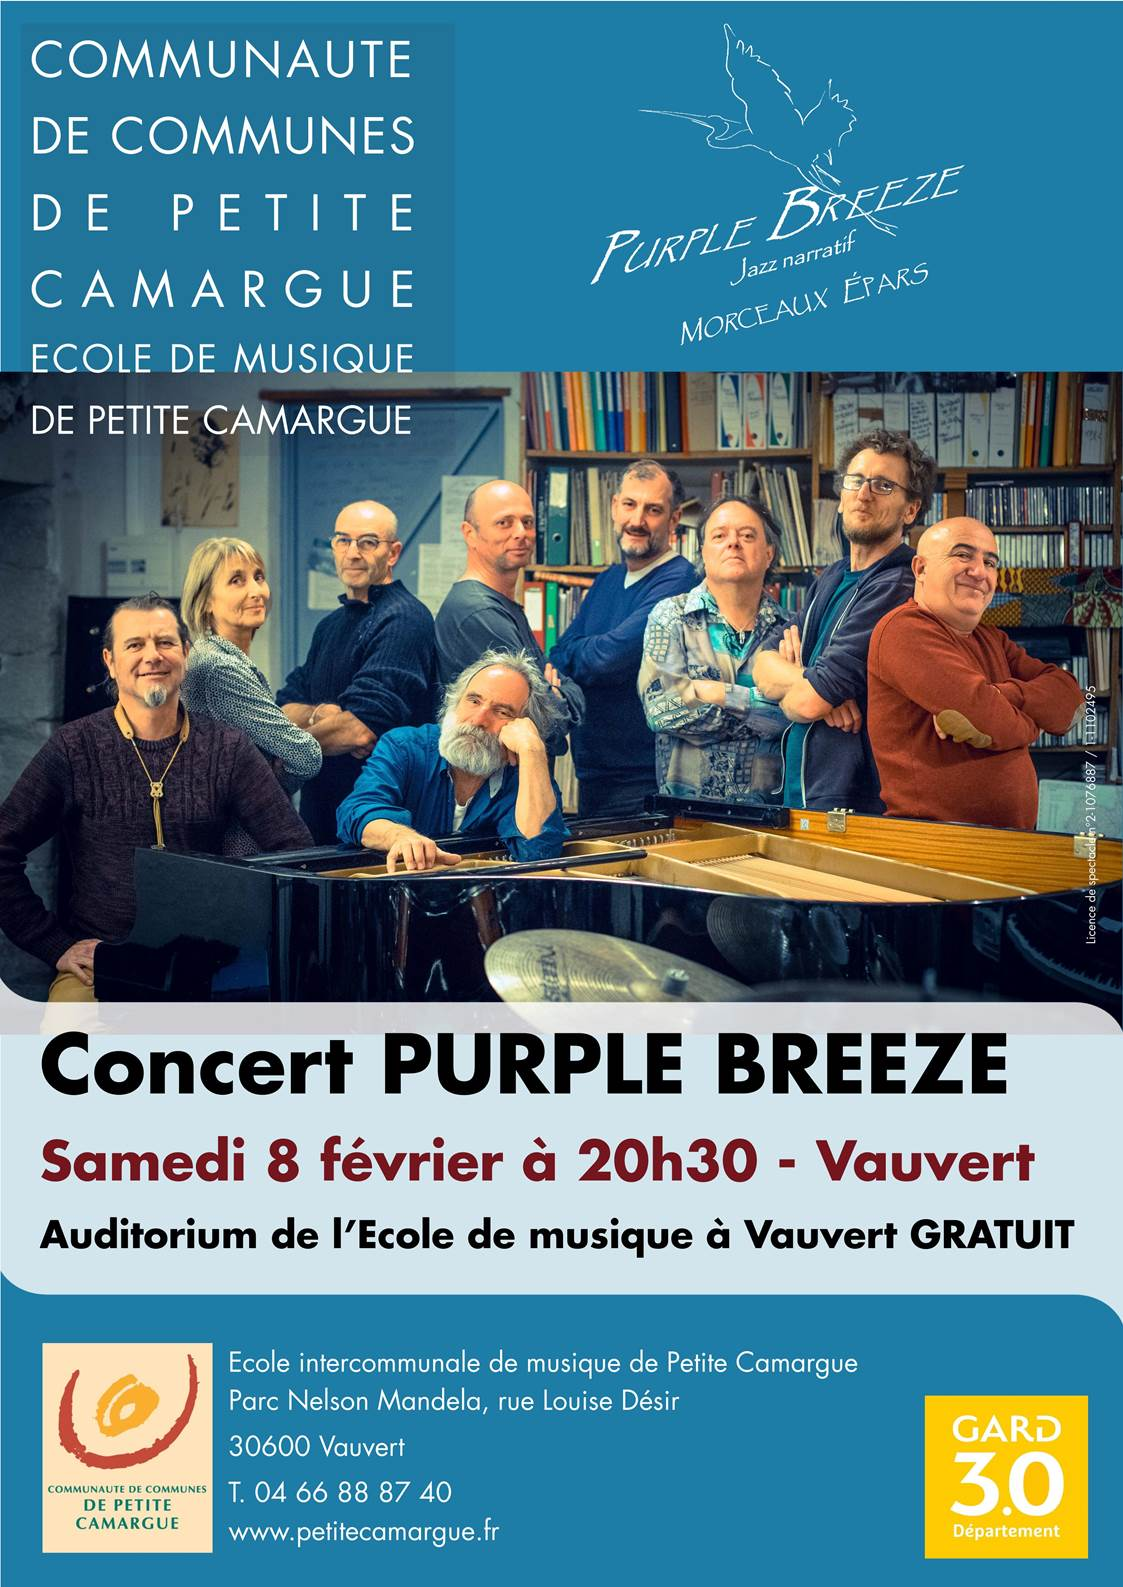 Concert Purple Breeze @ Auditorium de l'école de musique